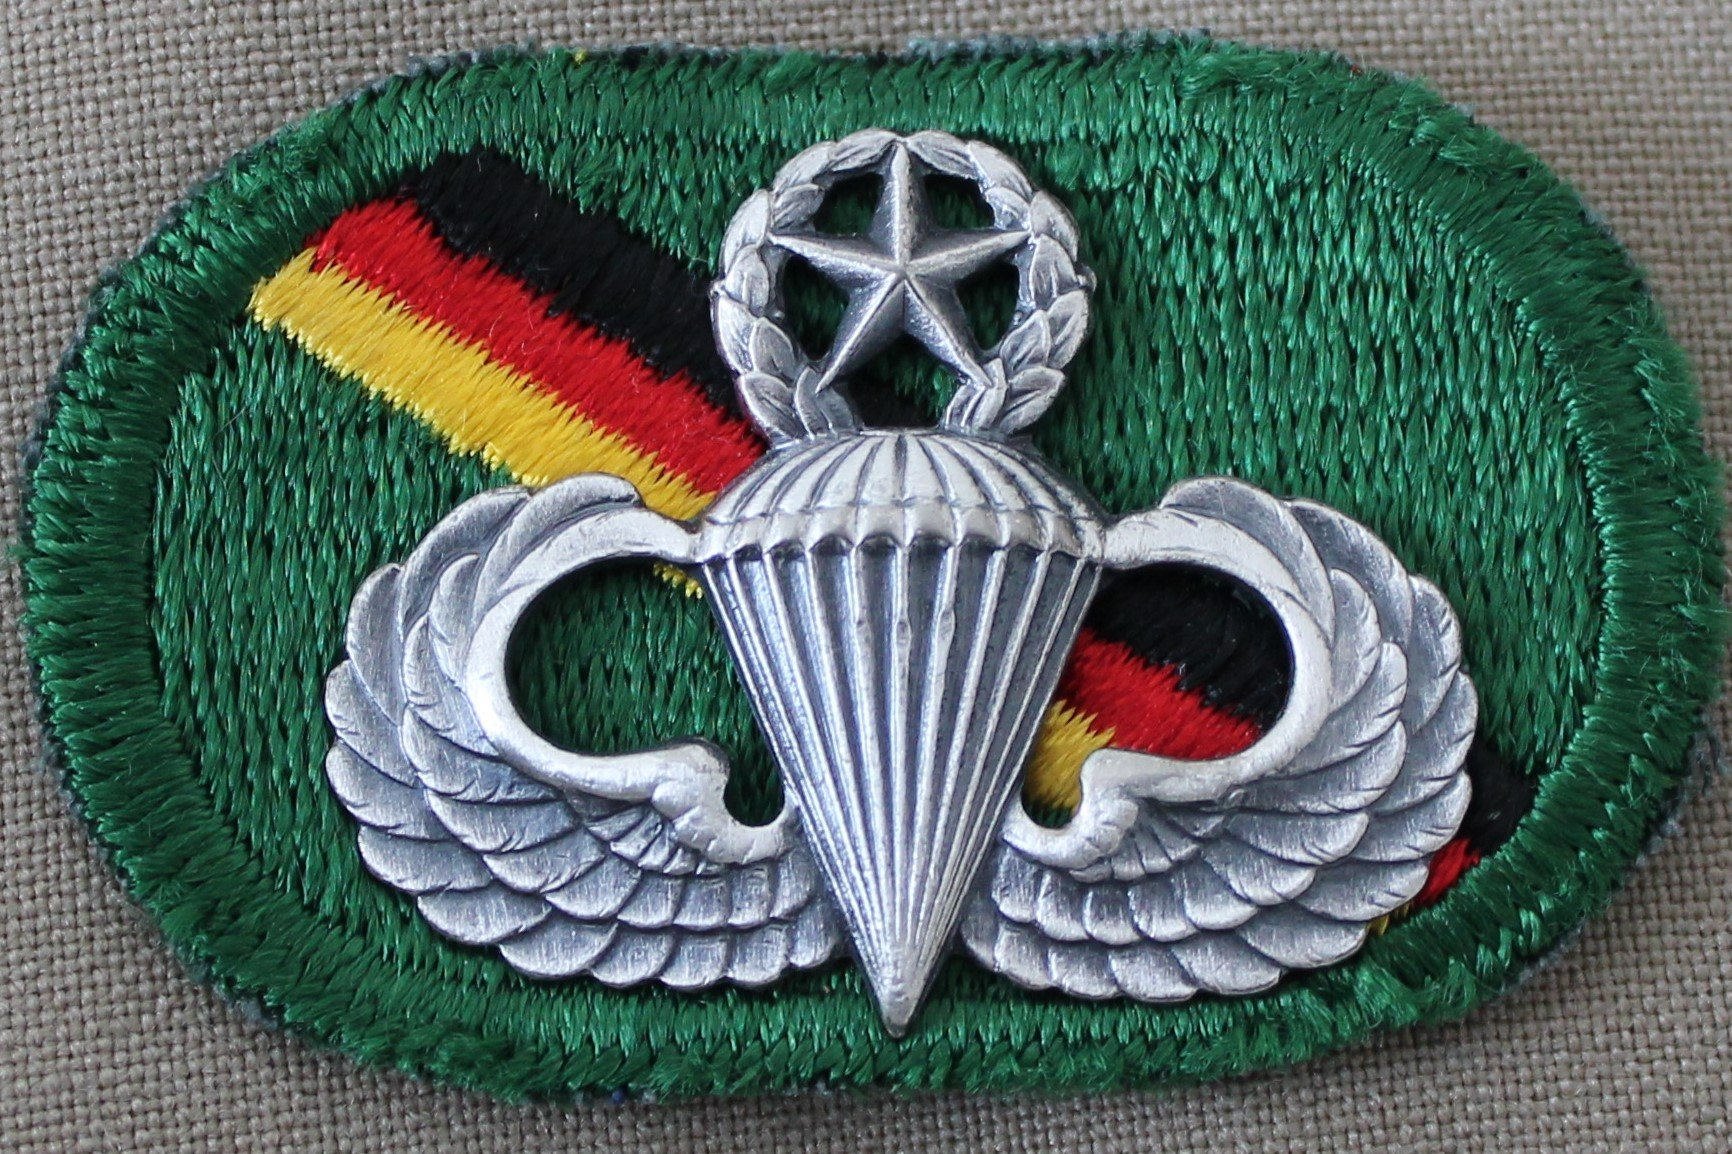 Amerikaanse wing, 10th Special Forces